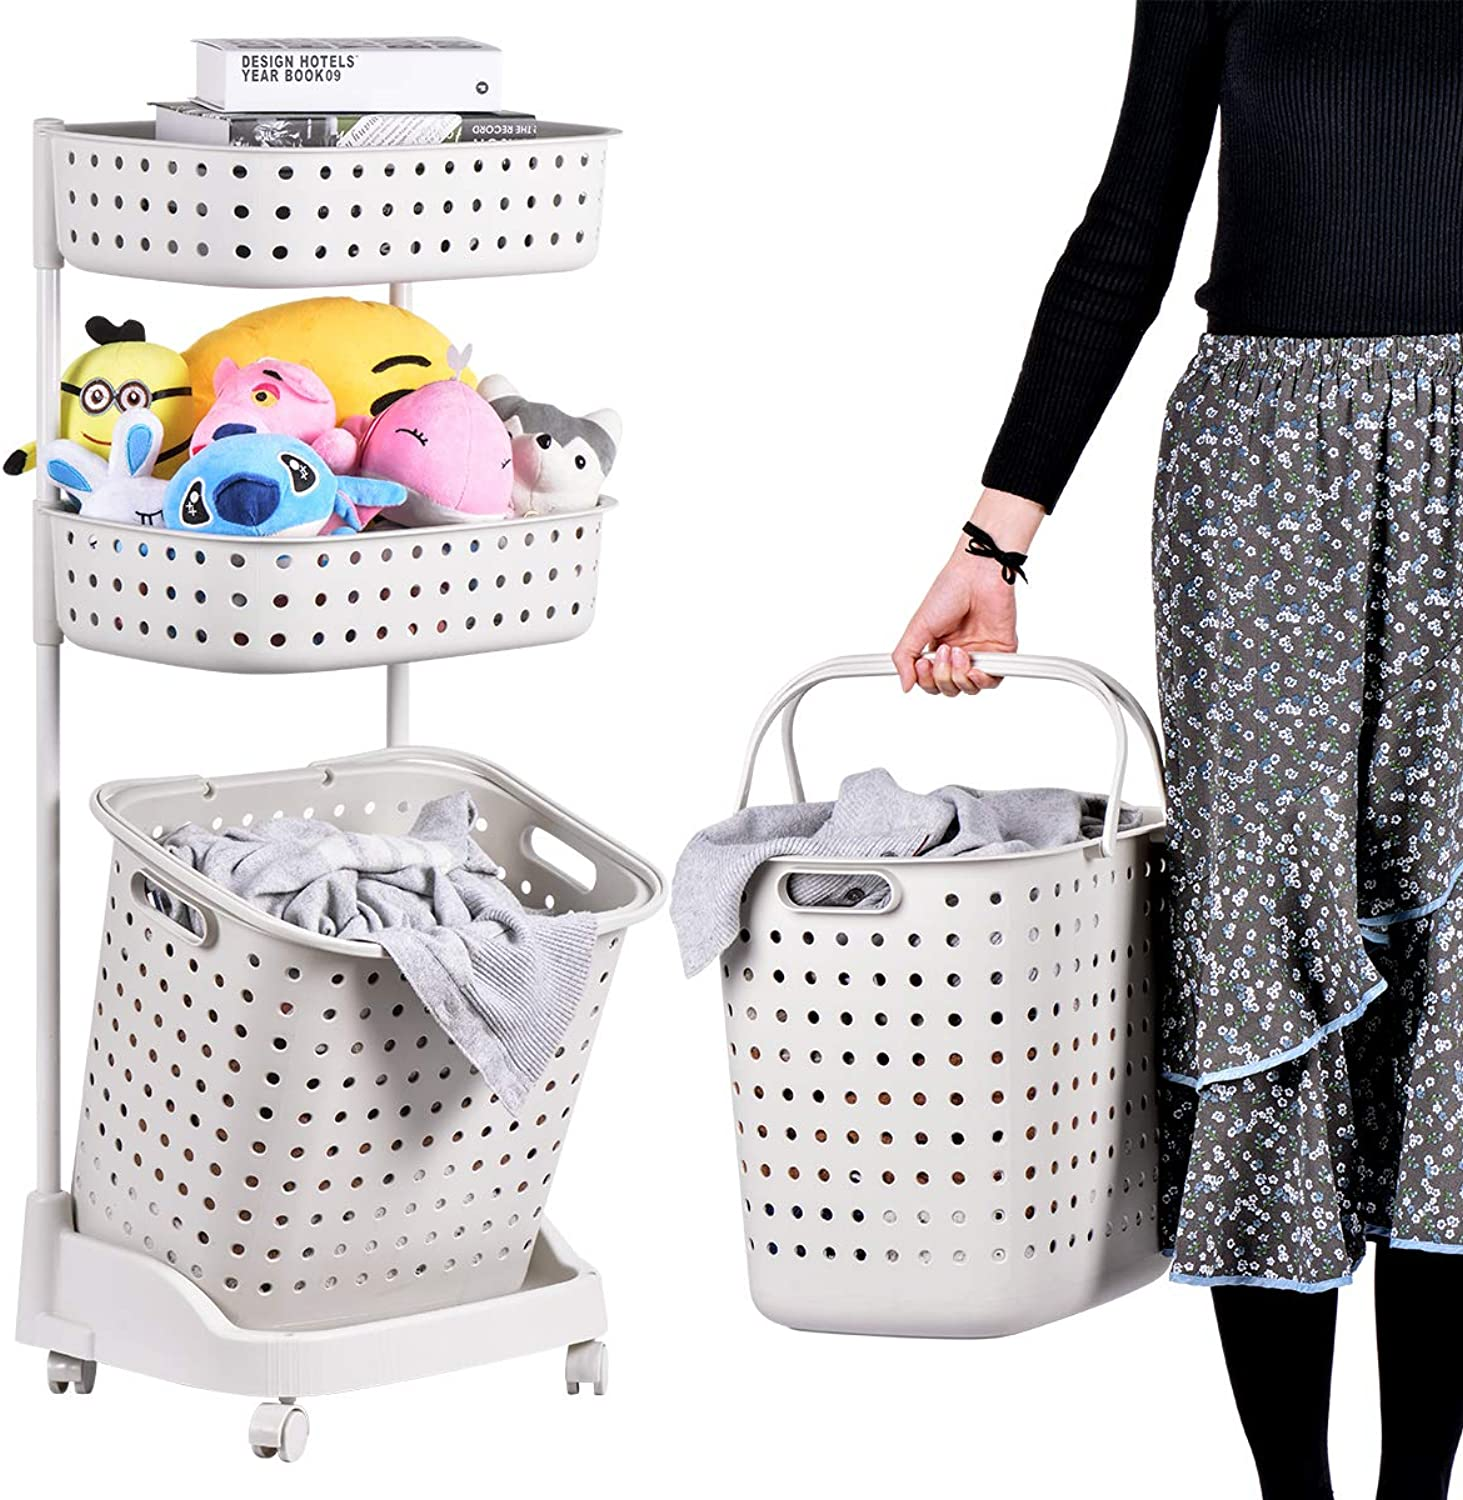 Laundry Basket With Wheel Rolling Laundry Sorter 3-Tier Basket Stand With 6 Side Hooks For Kitchen Bathroom Trolley Dirty Clothes Bag Washing Bin Home Office School Beauty Salon Utility Organizer Cart